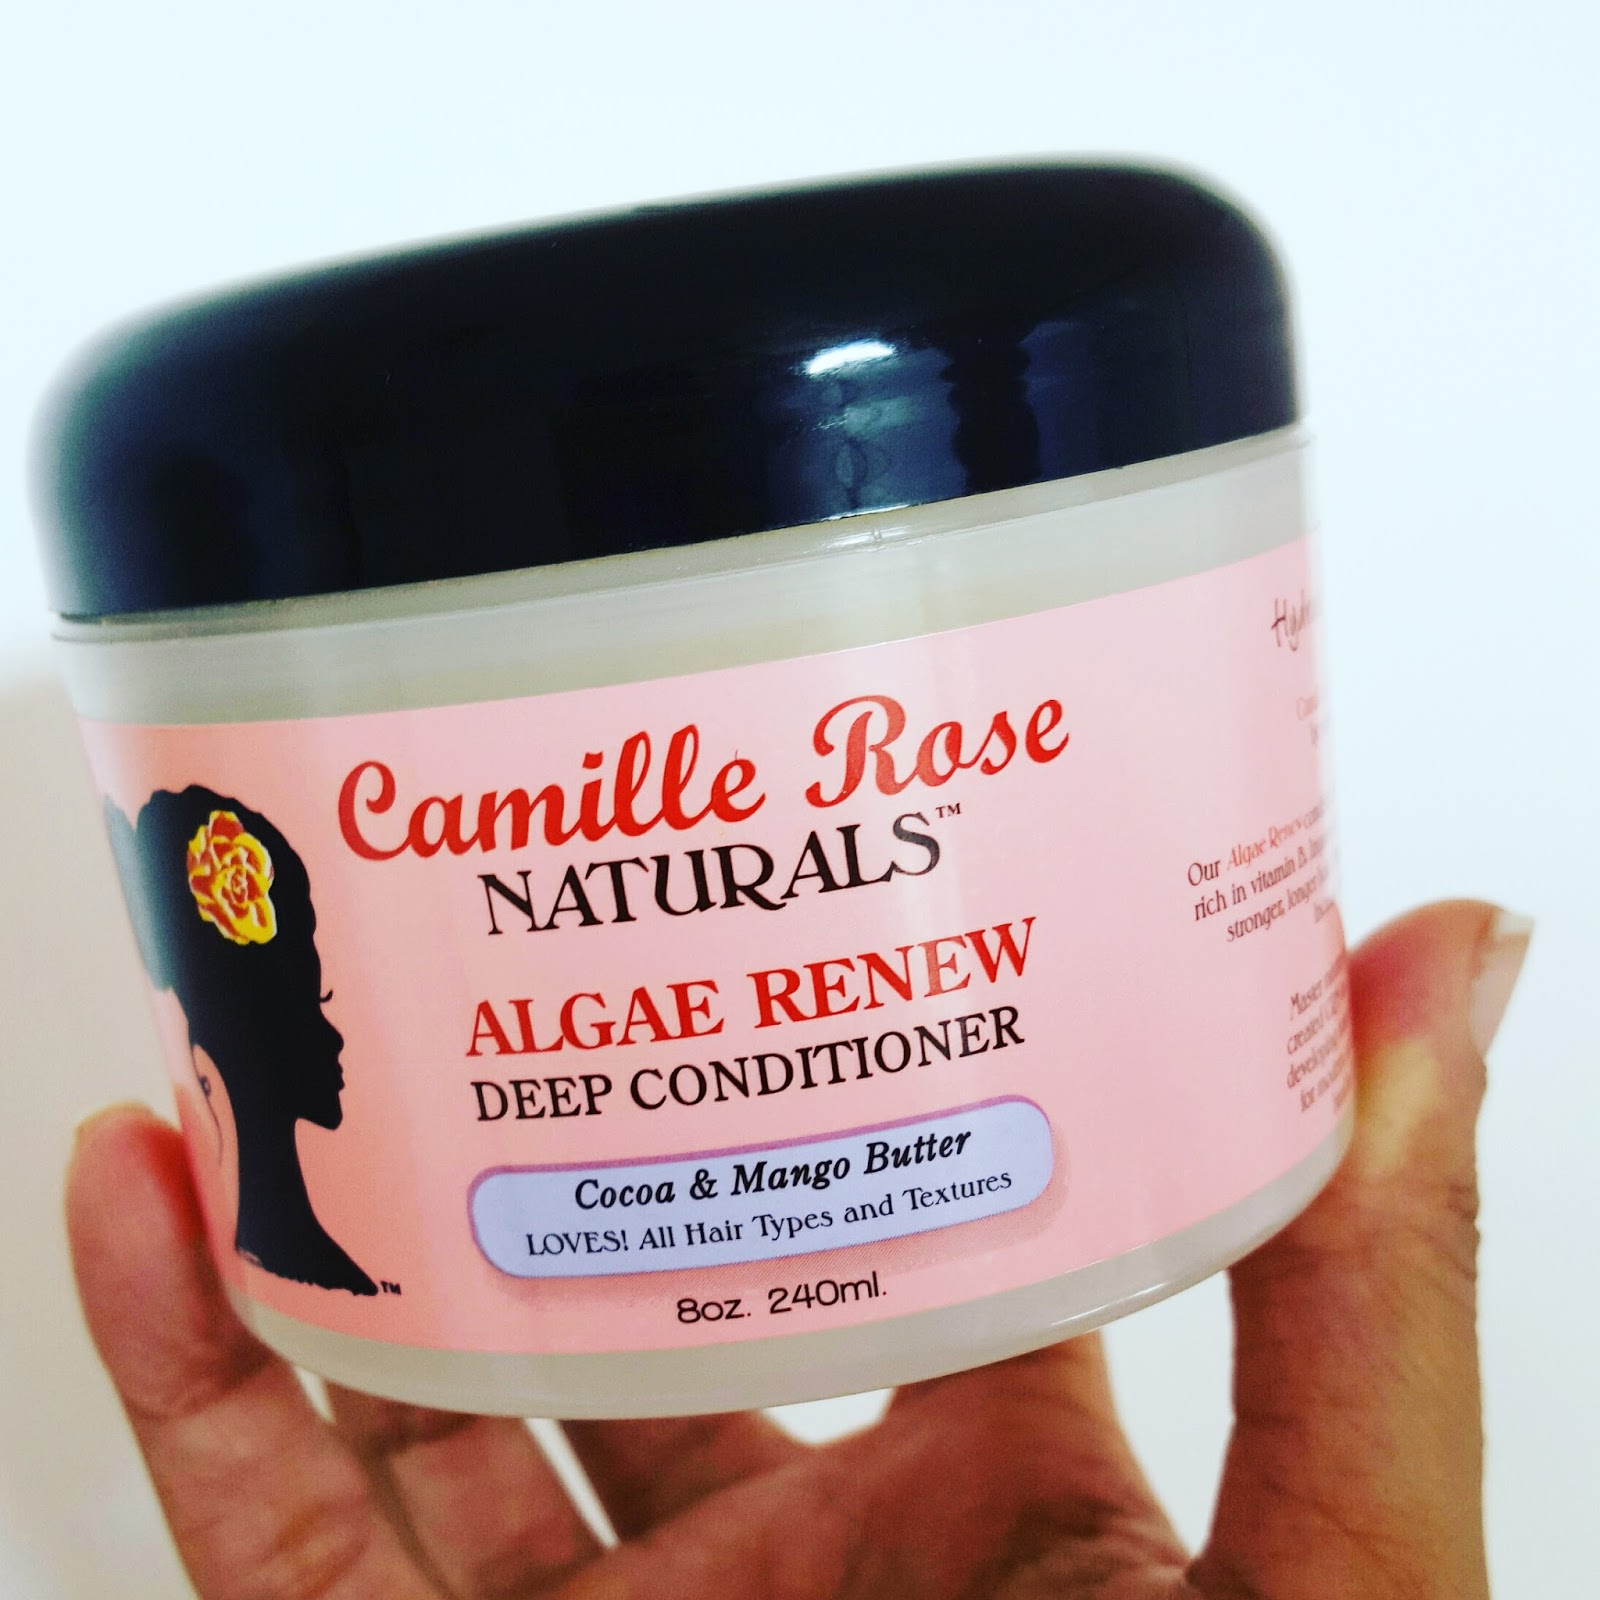 I Recently Picked Up This Gem At Target And Is The Best Deep Conditioner Ever My Hair Felt So Luxurious Smelled Like Chocolate After Lying